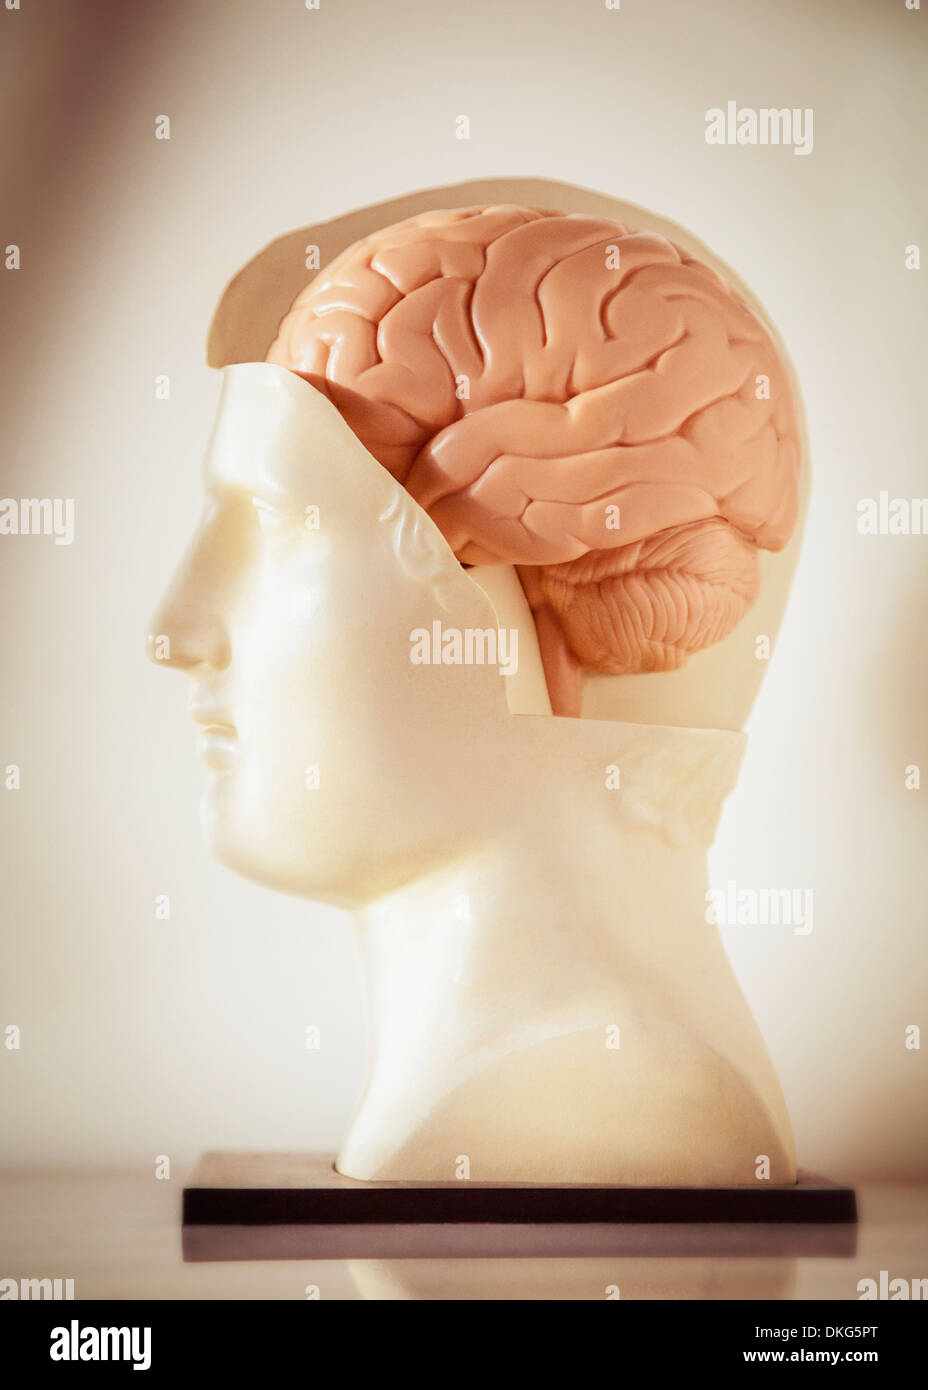 A profile view of an anatomical model of a human brain in a Roman or Greek style statue bust - Stock Image